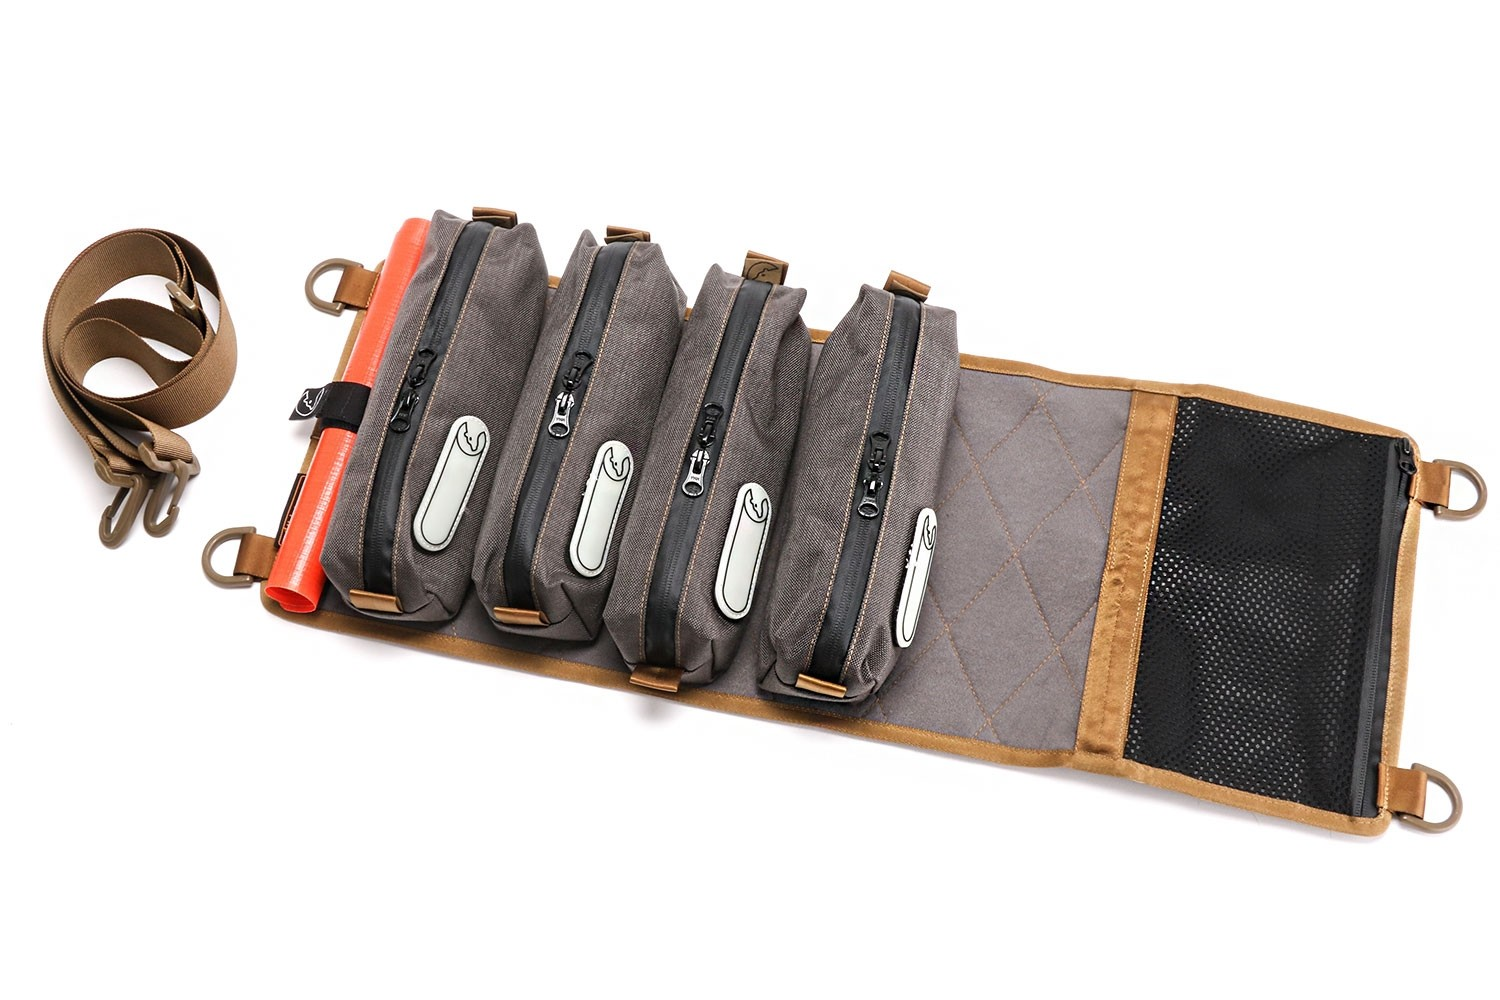 Tool Roll small, modular with pockets and Velcro base, S1 or S2 Nakatanenga